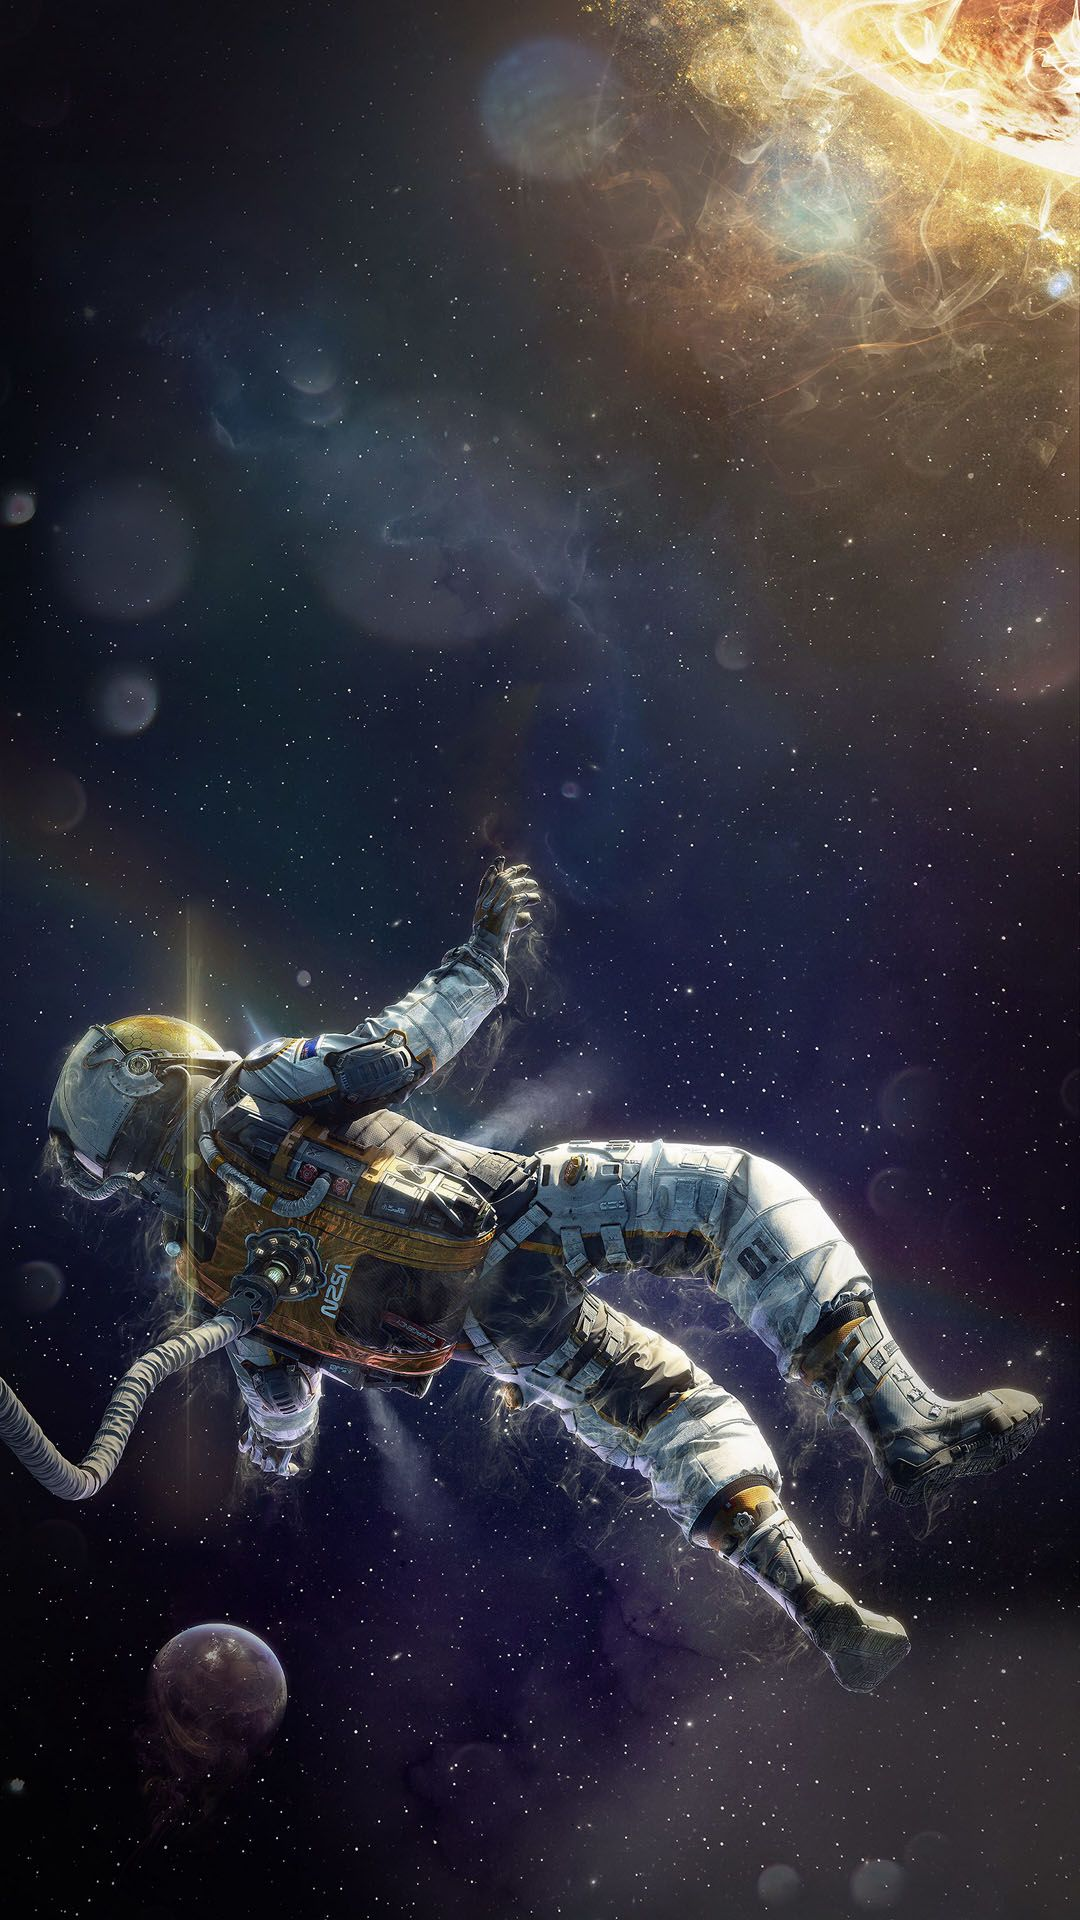 Astronaut Iphone Wallpapers Top Free Astronaut Iphone Backgrounds Wallpaperaccess